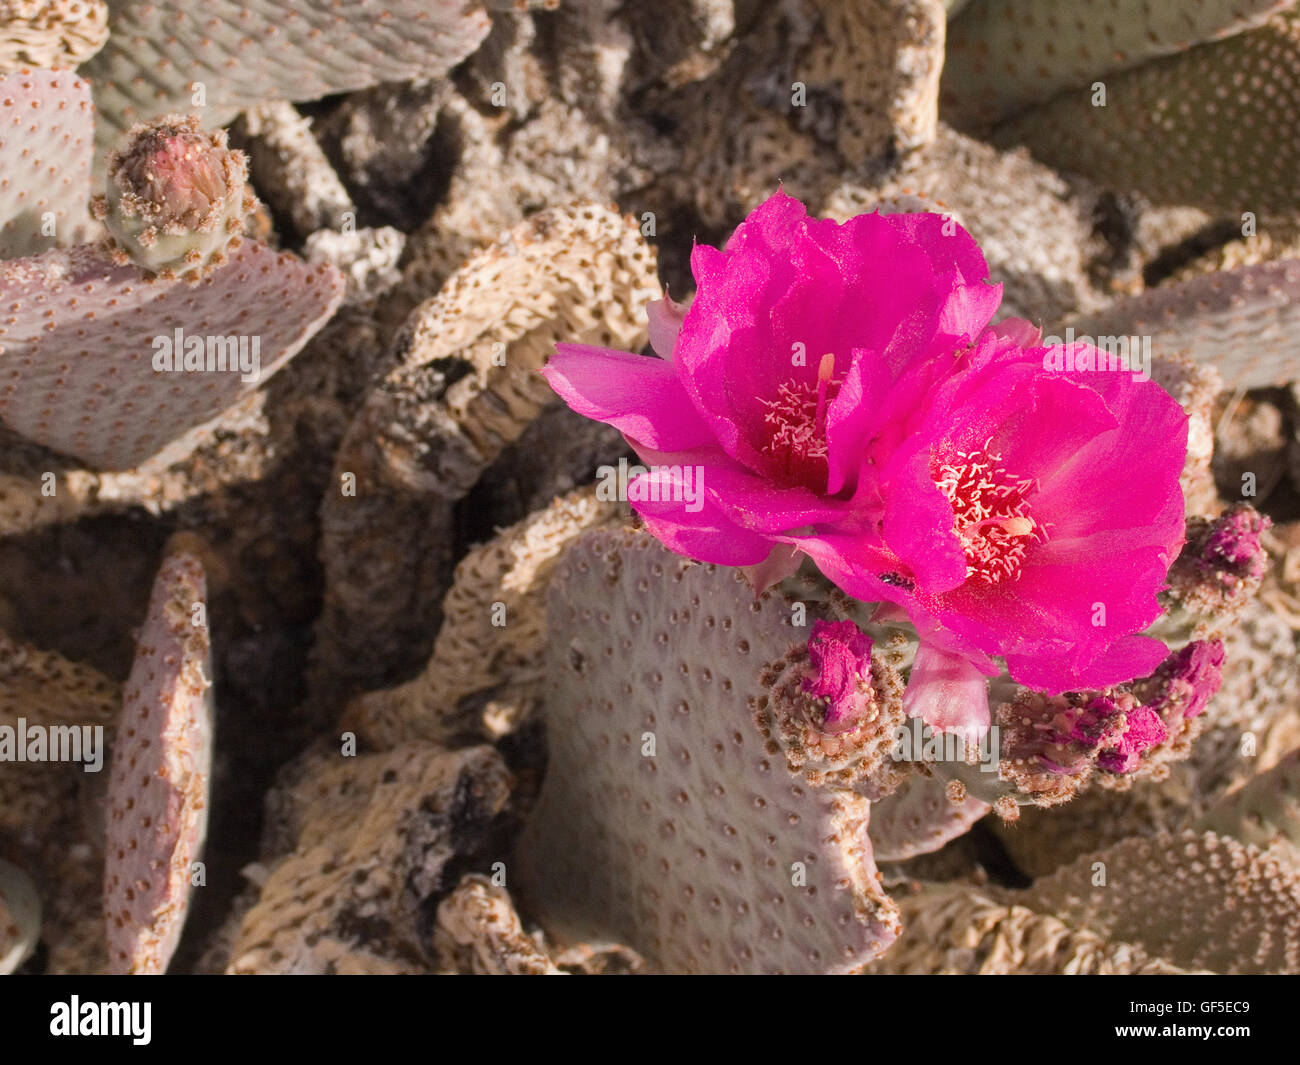 The Englemann's hedgehog, or  Echinocereus engelmannii. Commonly known as the Santa's cactus or the strawberry cactus. - Stock Image